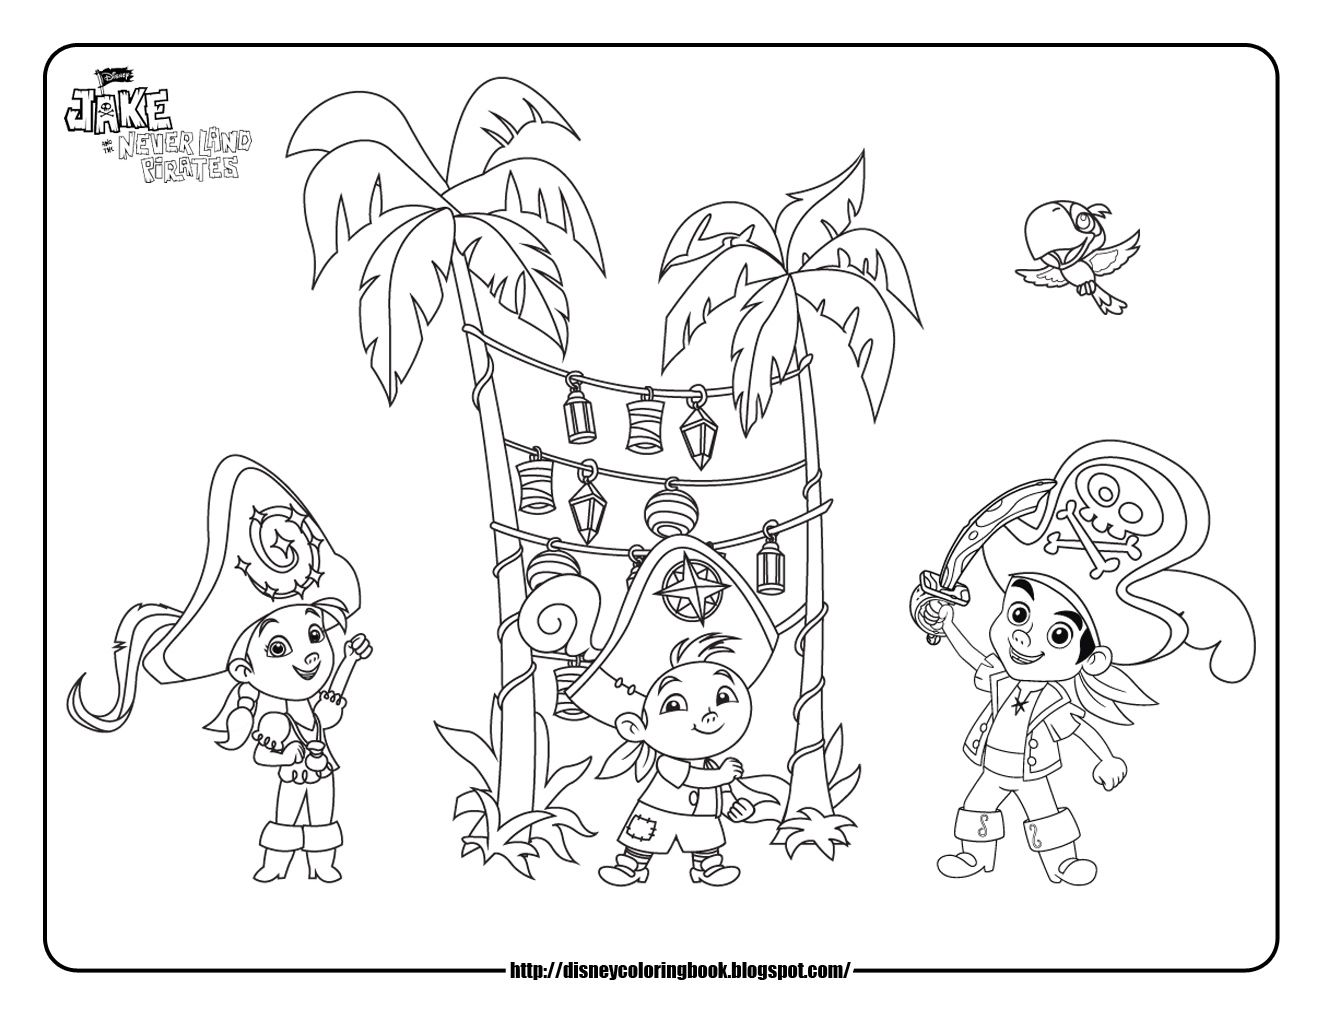 jake and the neverland pirates coloring pages | Luke\'s 3rd ...